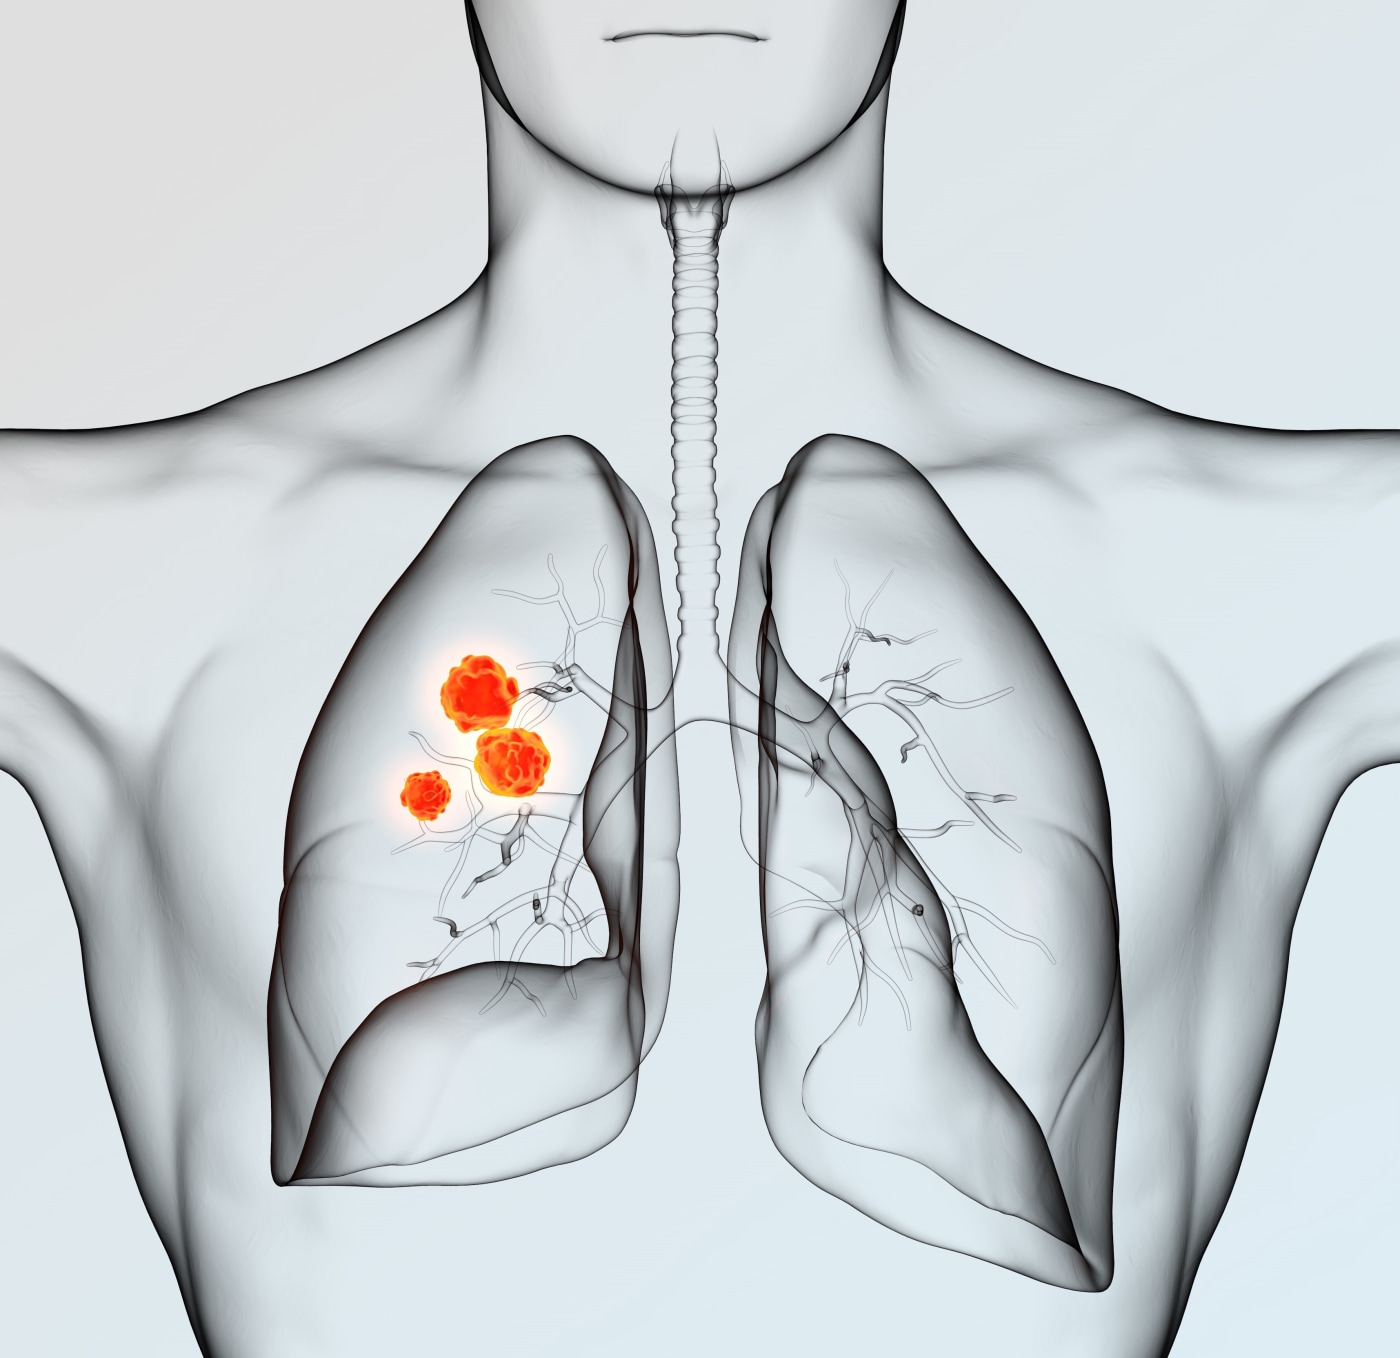 Yale Cancer Center researchers show adding radiation after immunotherapy improves survival time for patients with advanced lung cancer